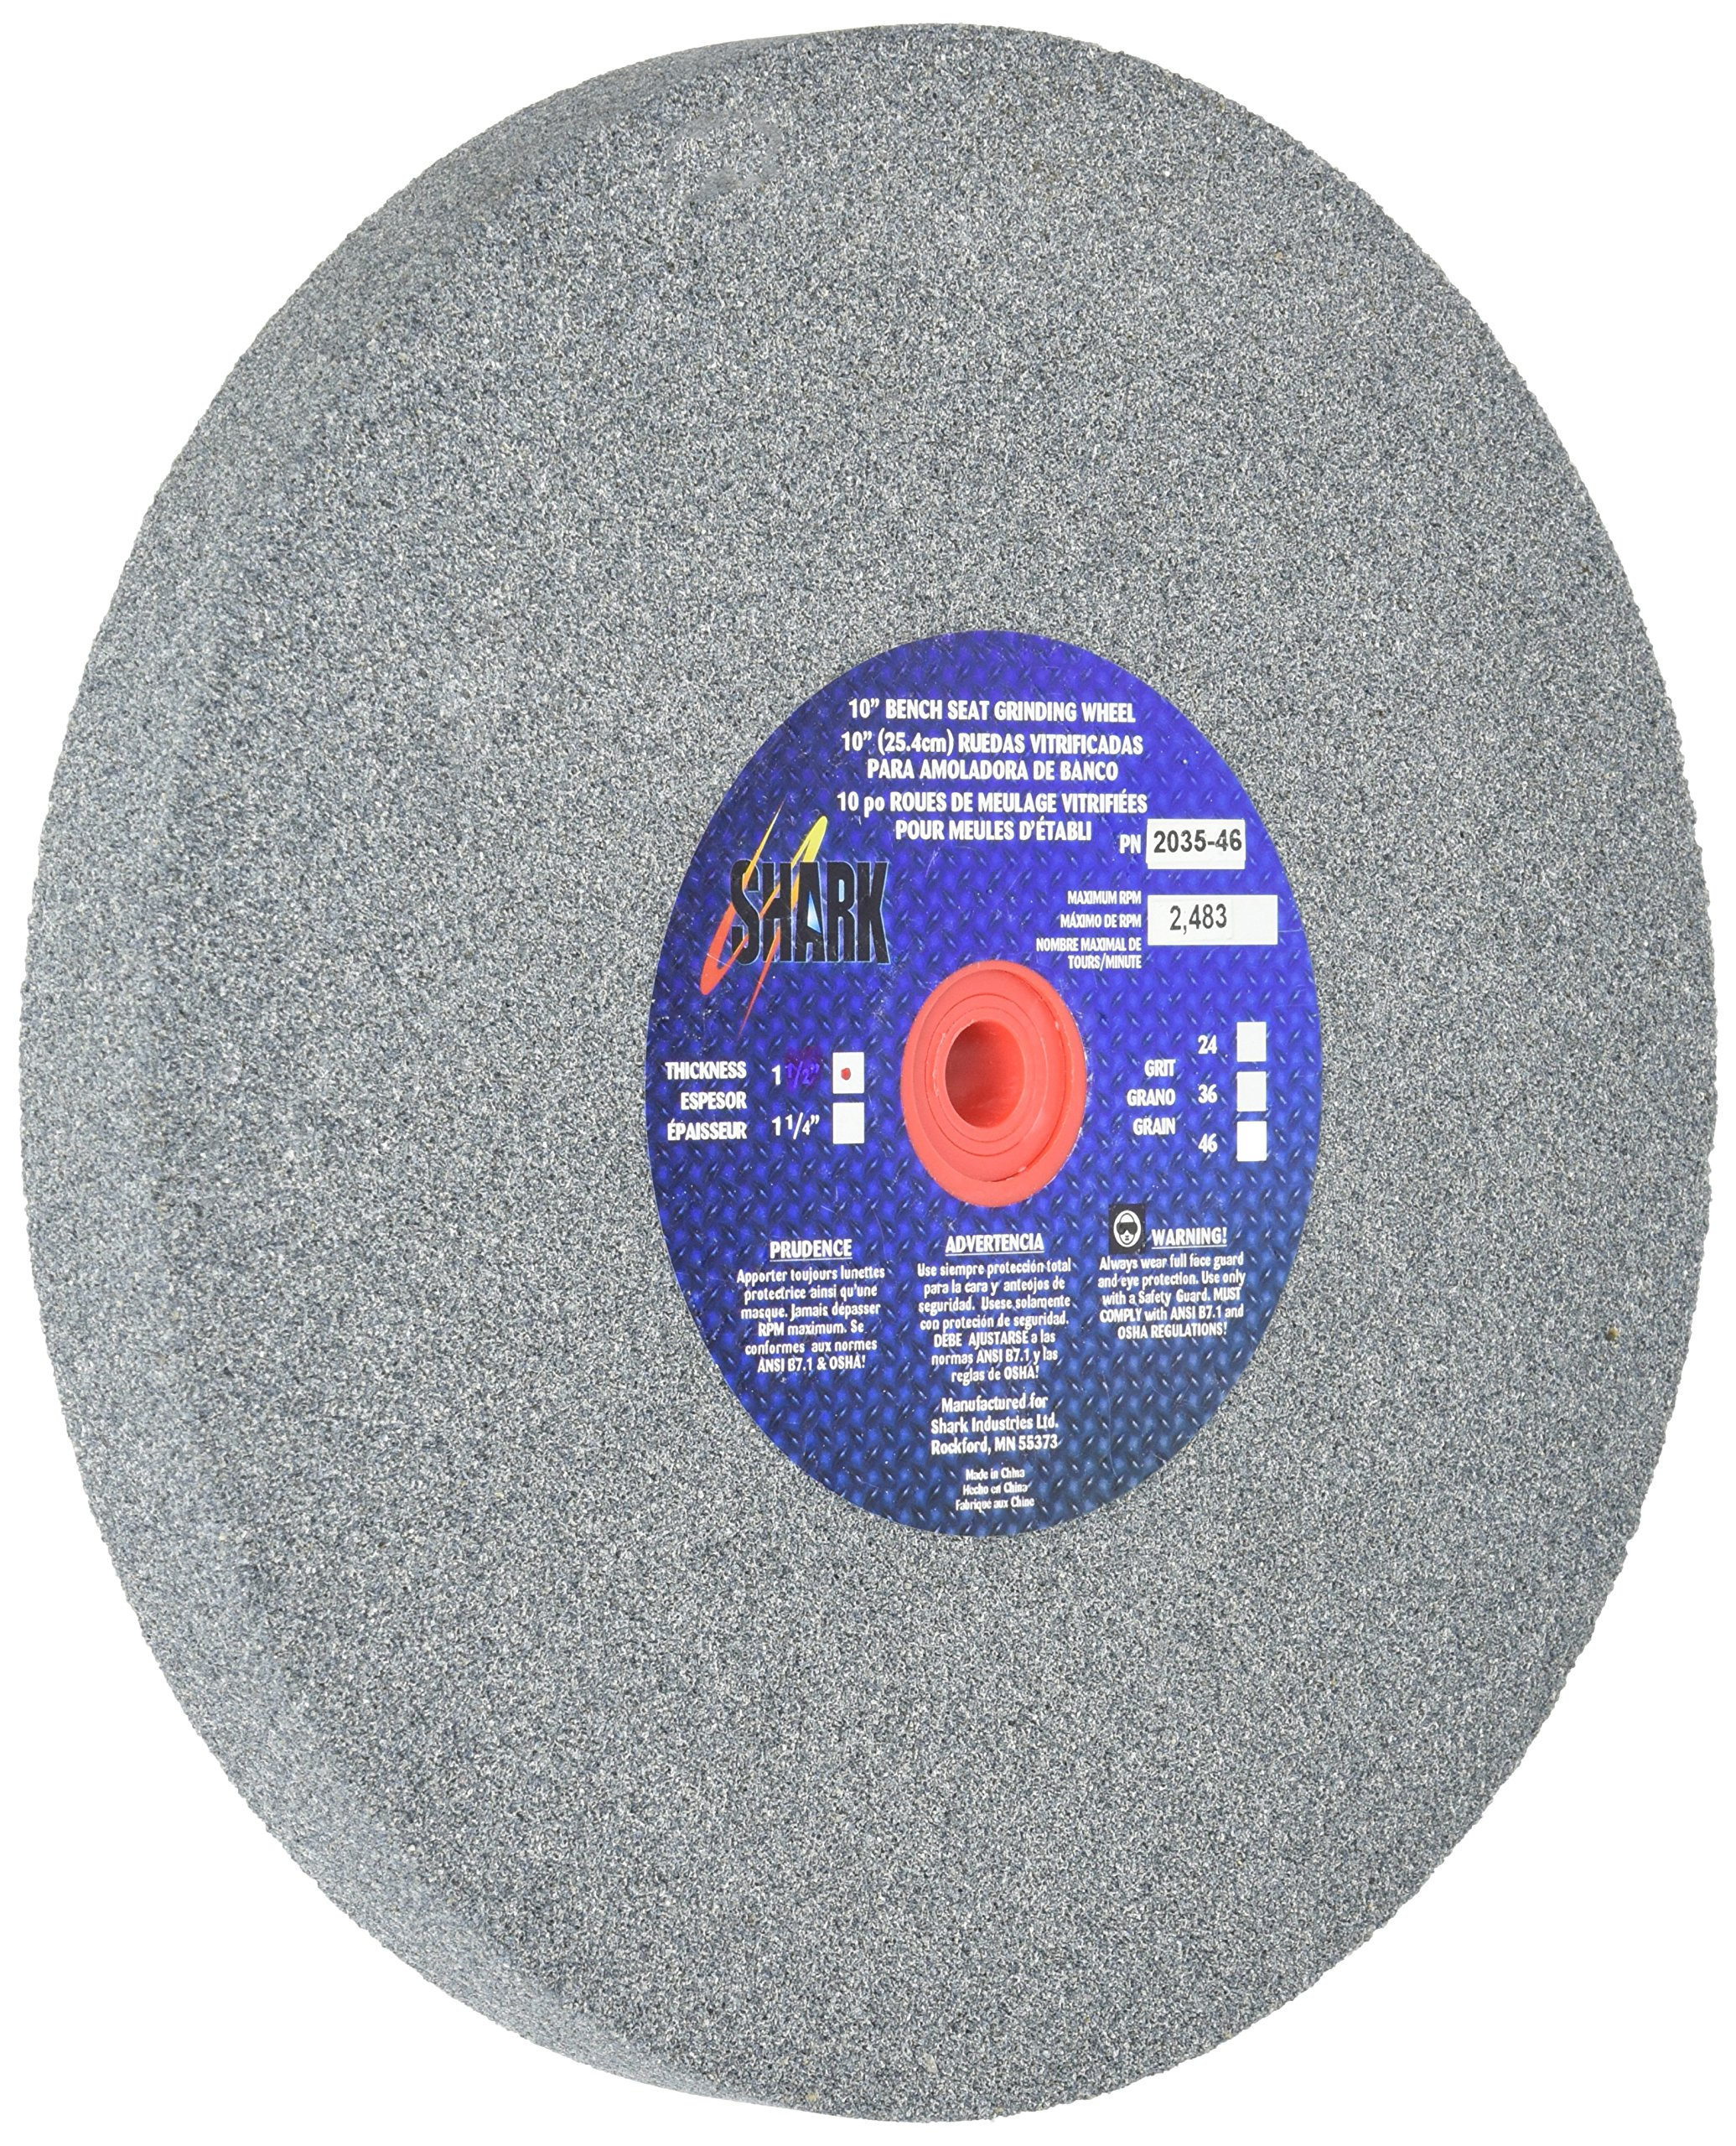 Shark 2035-46    10-Inch by 1 0.25-Inch by 1-Inch Bench Seat Grinding Wheel, Grit-46